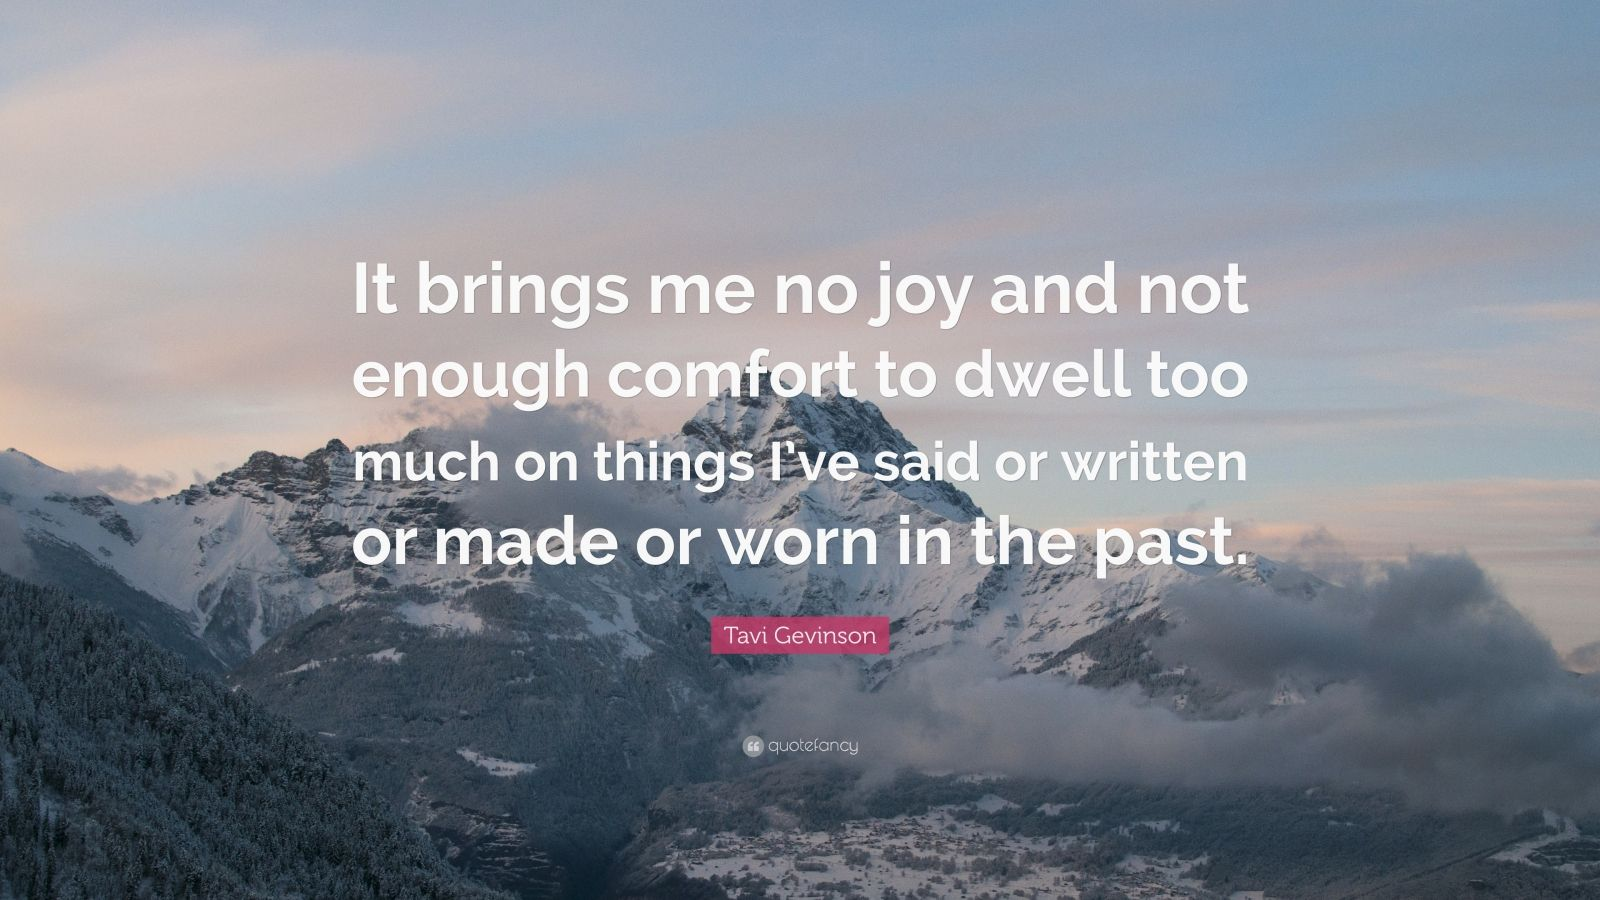 """Tavi Gevinson Quote: """"It brings me no joy and not enough comfort to dwell too much on things I've said or written or made or worn in the past."""""""